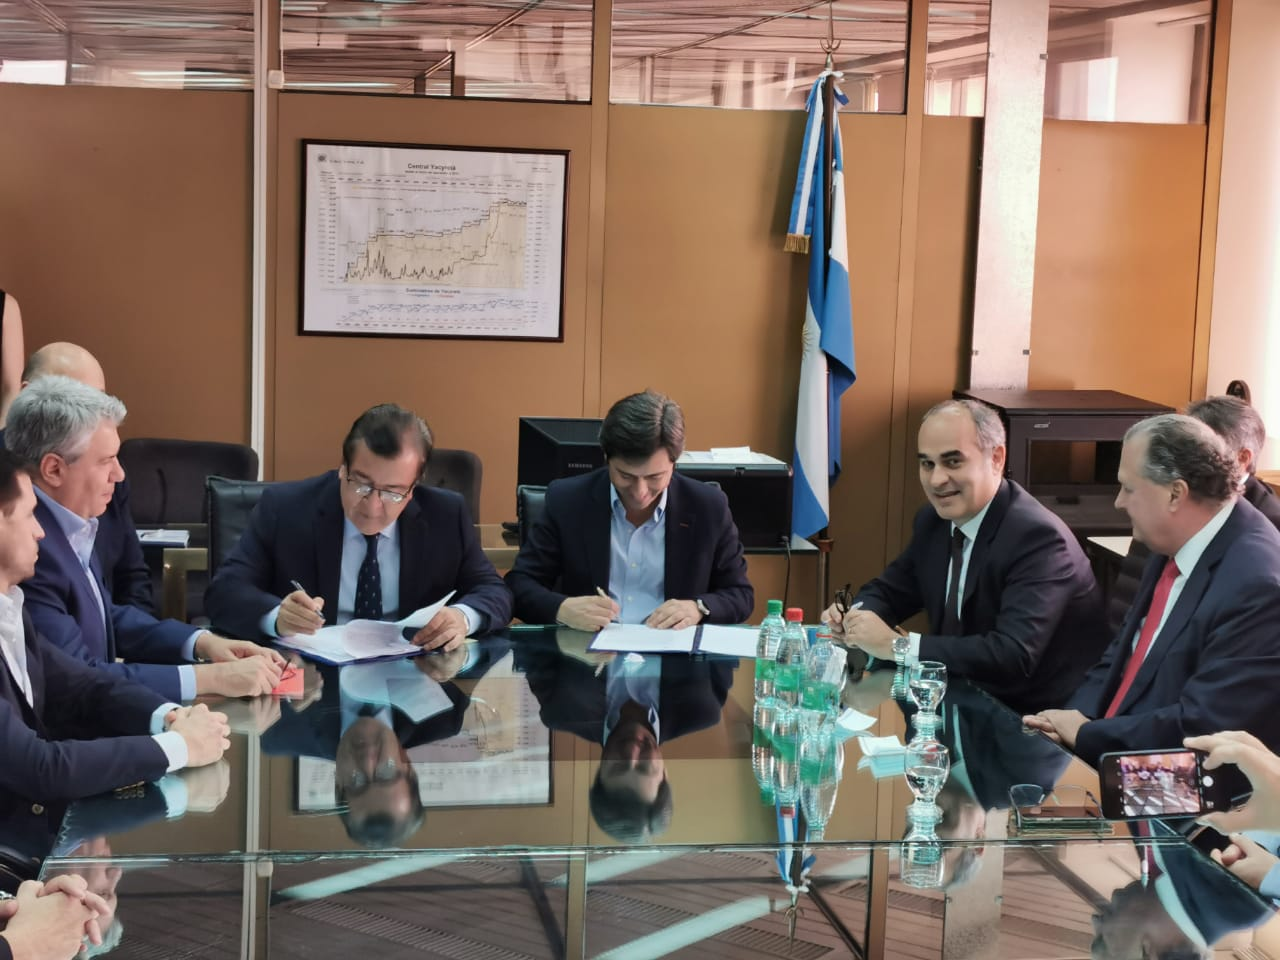 Historic: Paraguay and Argentina sign contracts to start the civil works of Aña Cua